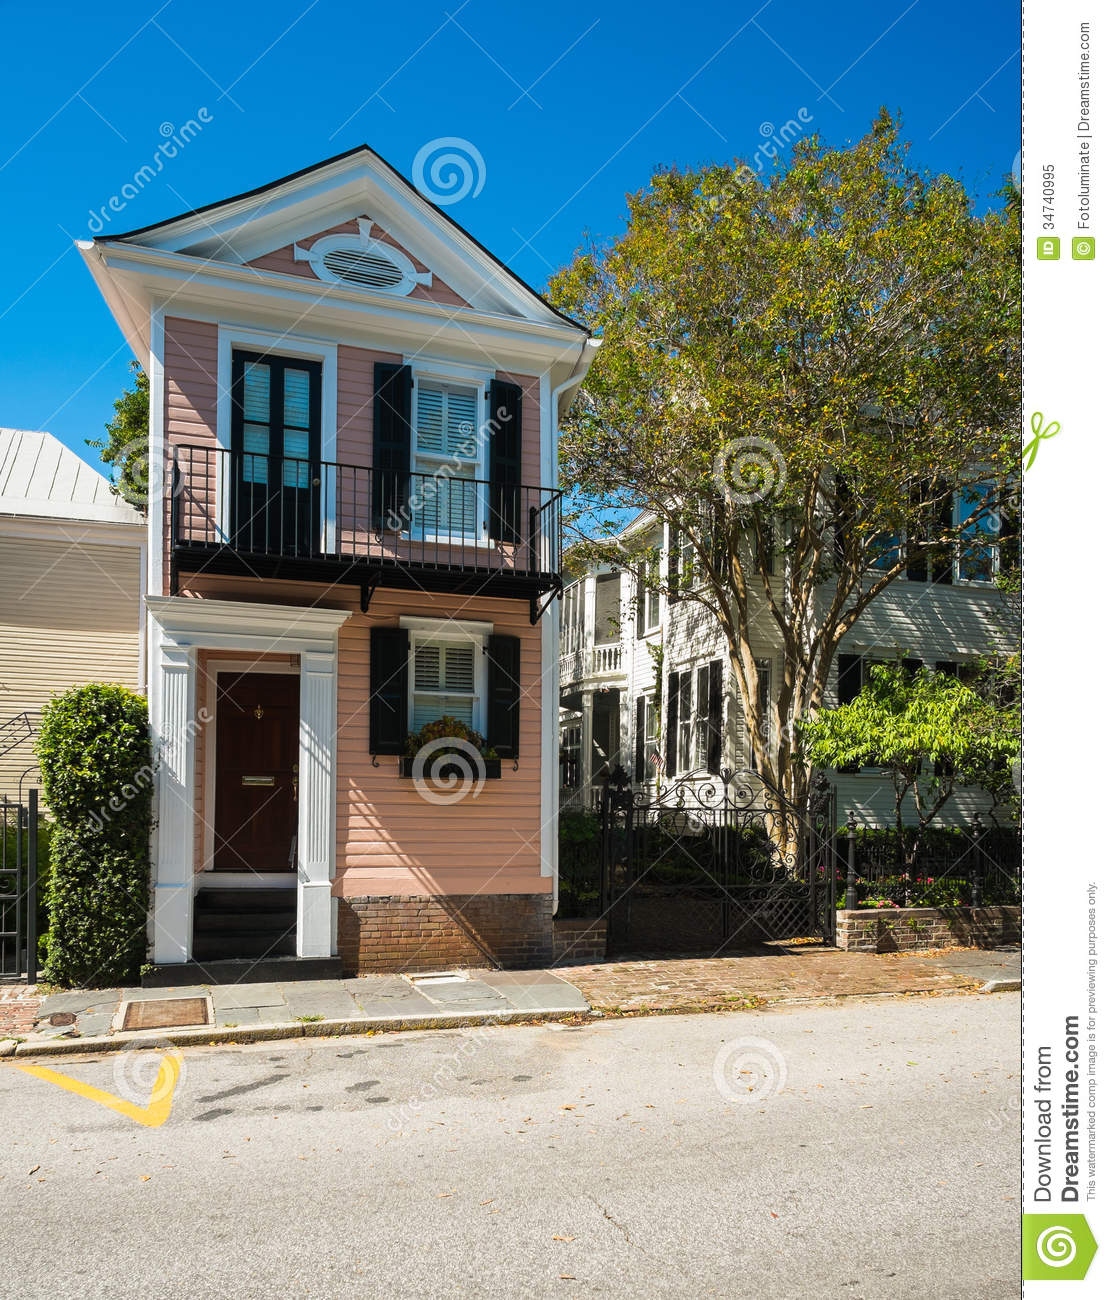 Southern Homes Stock Image Image Of Balcony Neighborhood